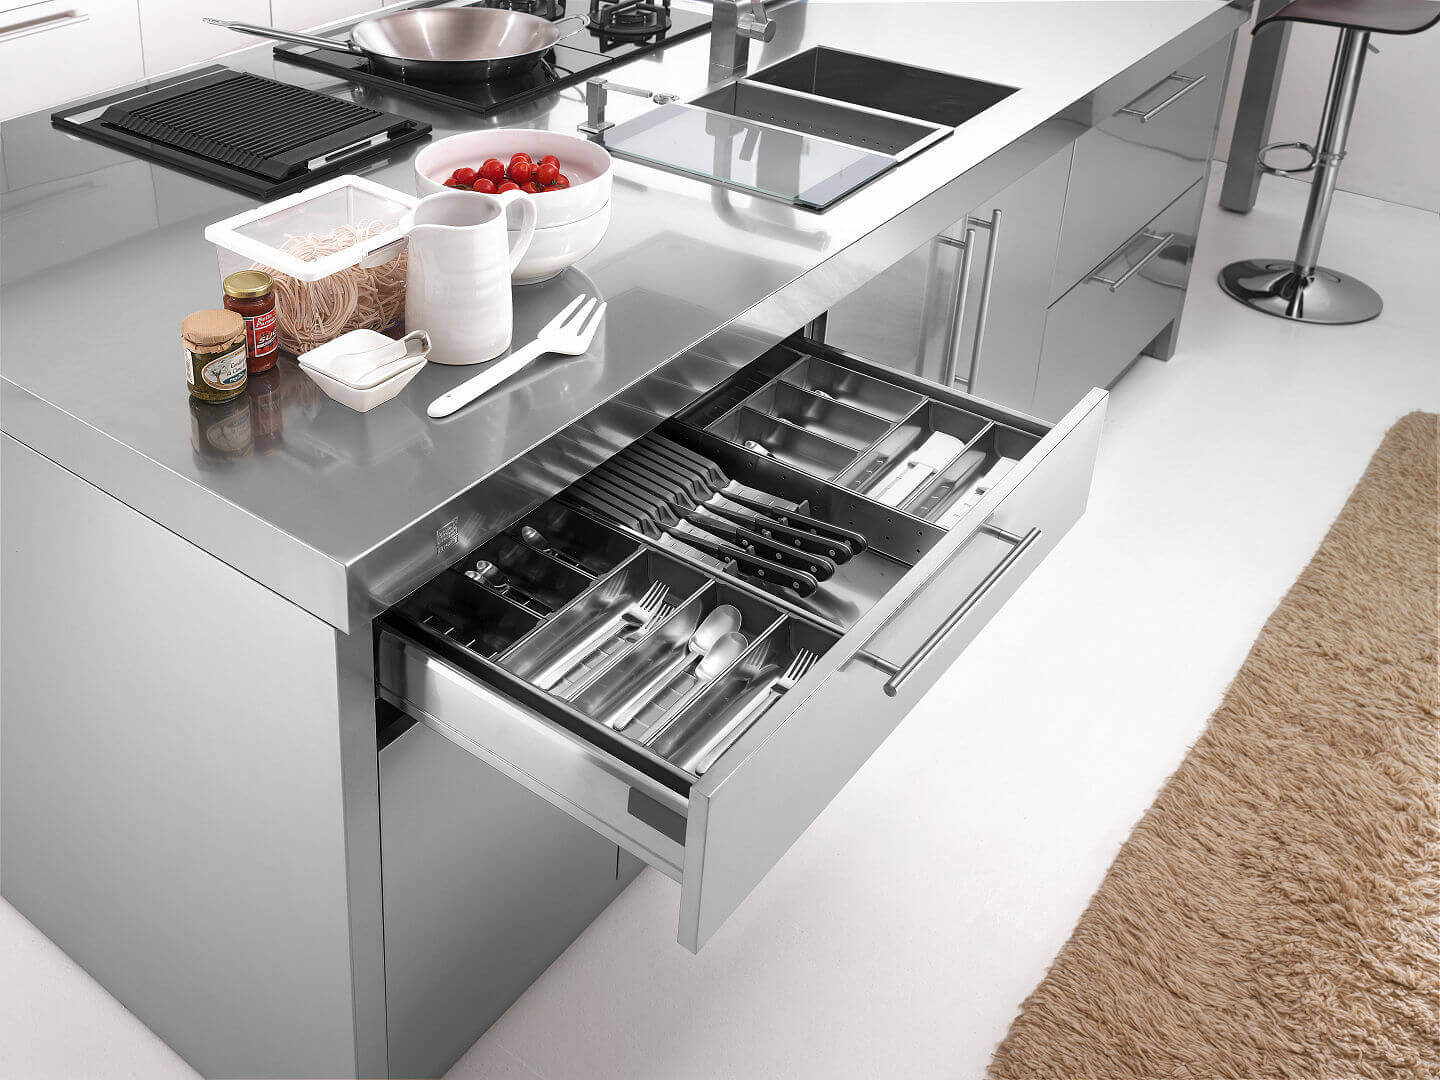 Arca Cucine Italy - Domestic stainless steel kitchens - 23 - Barna - 005